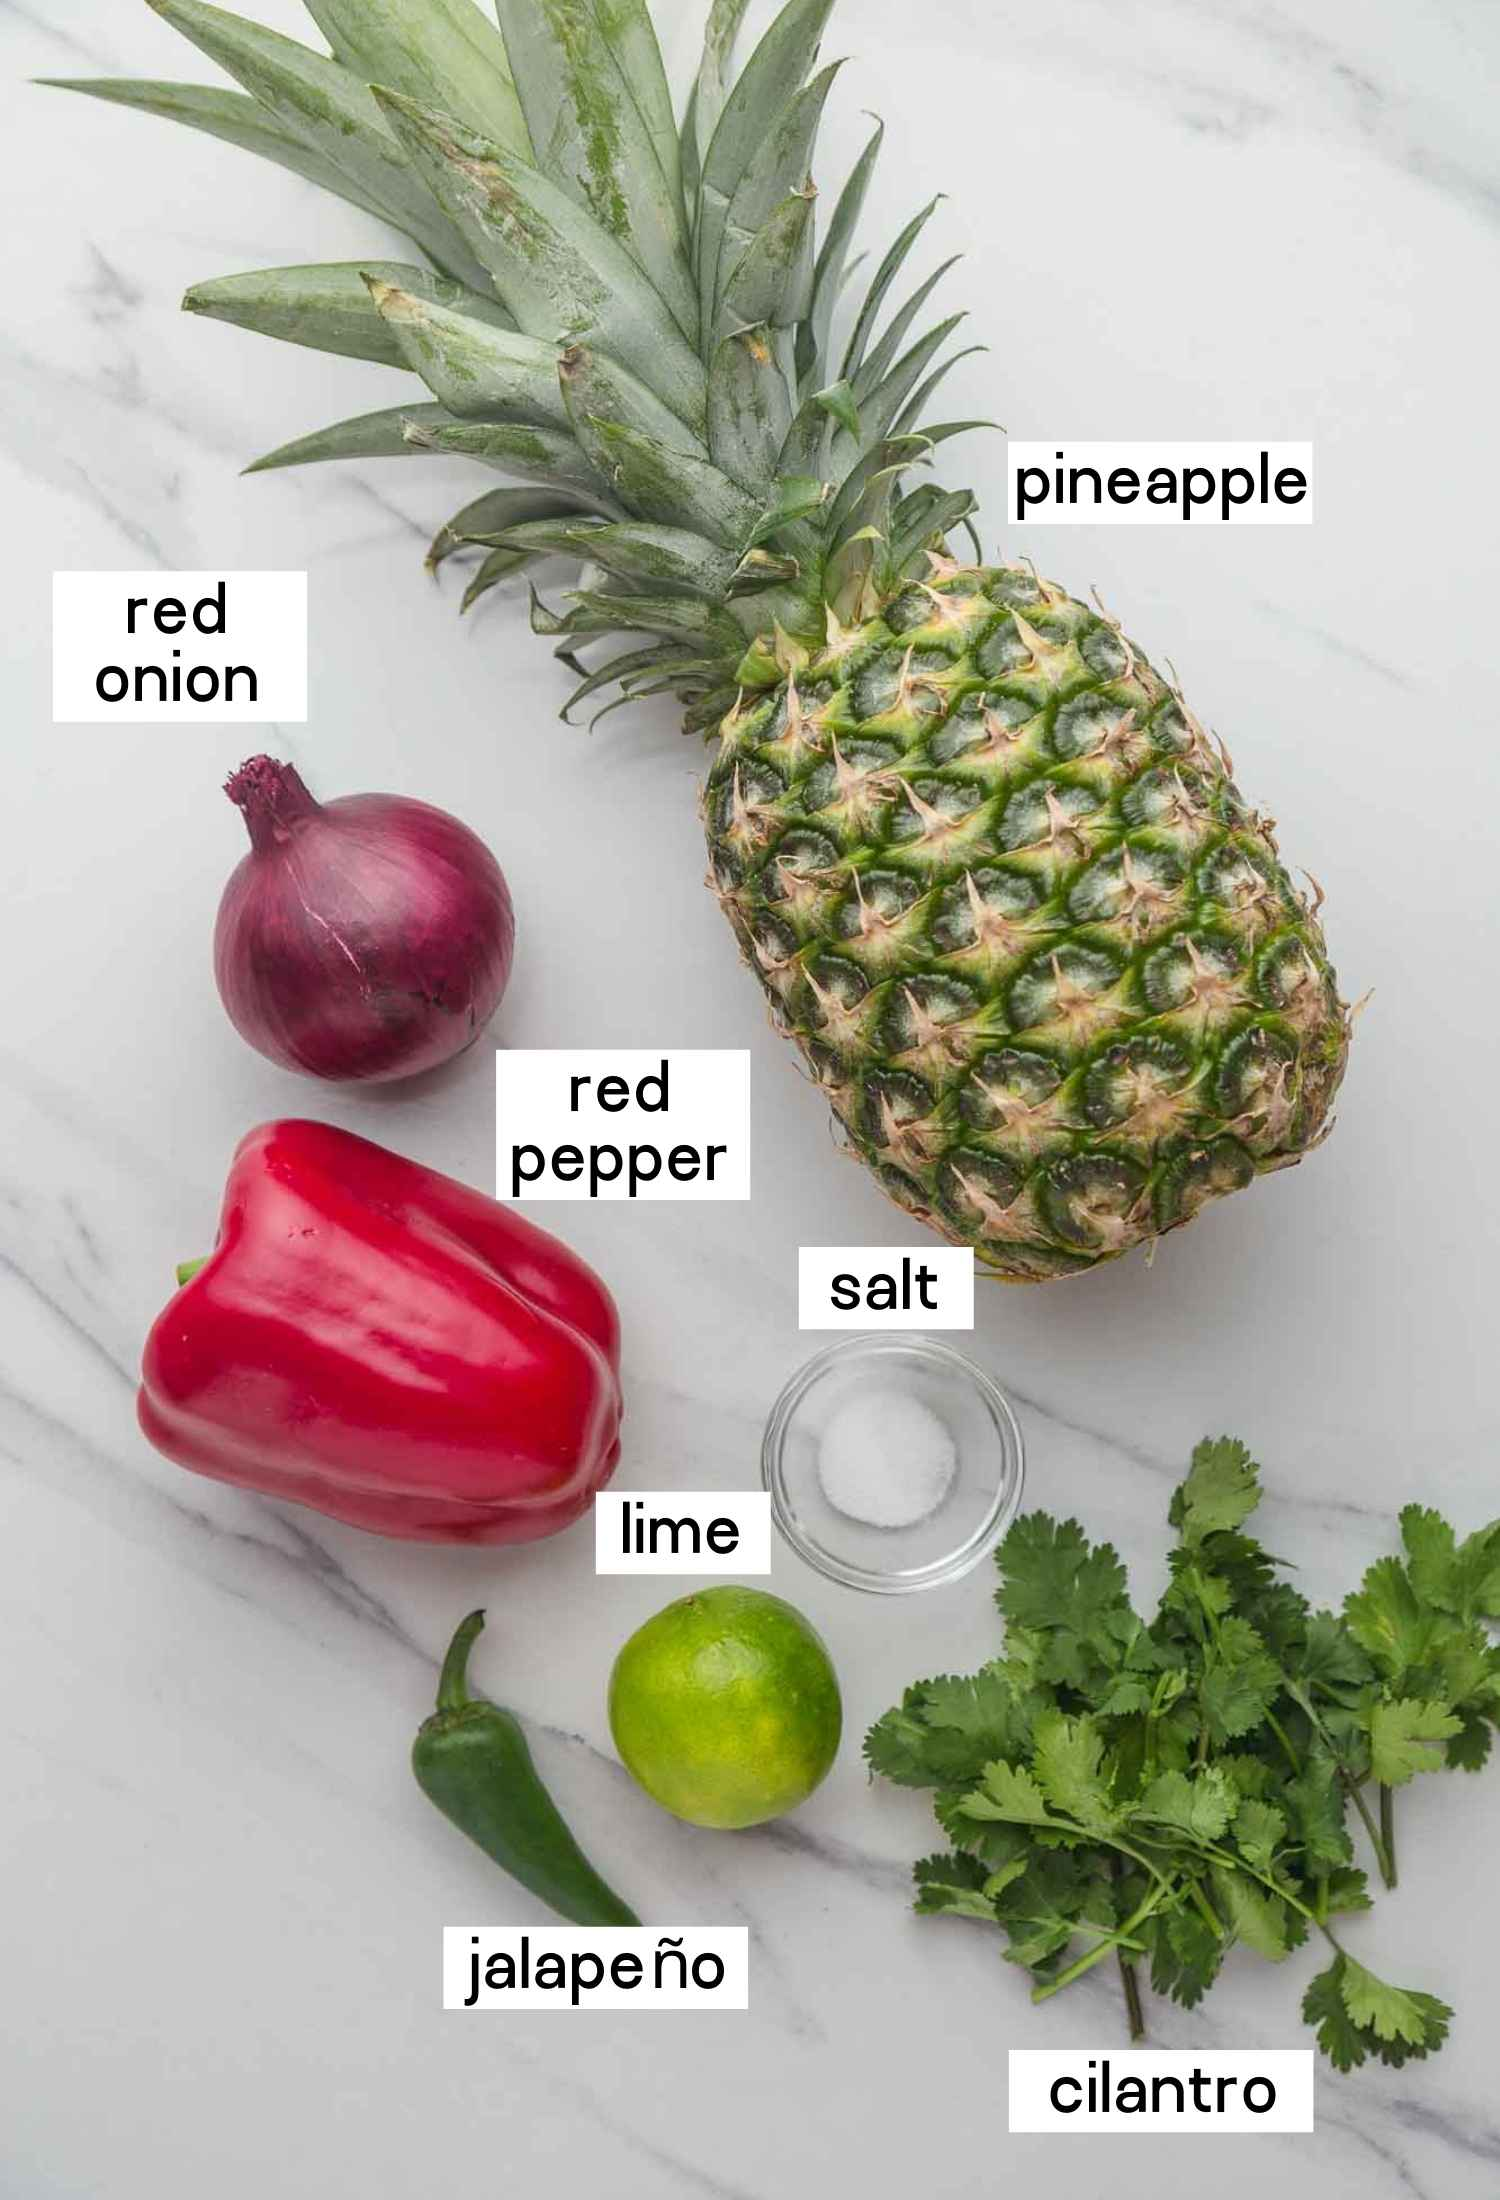 Ingredients needed to make pineapple salsa: pineapple, red pepper, red onion, cilantro, jalapeño, lime, and salt.